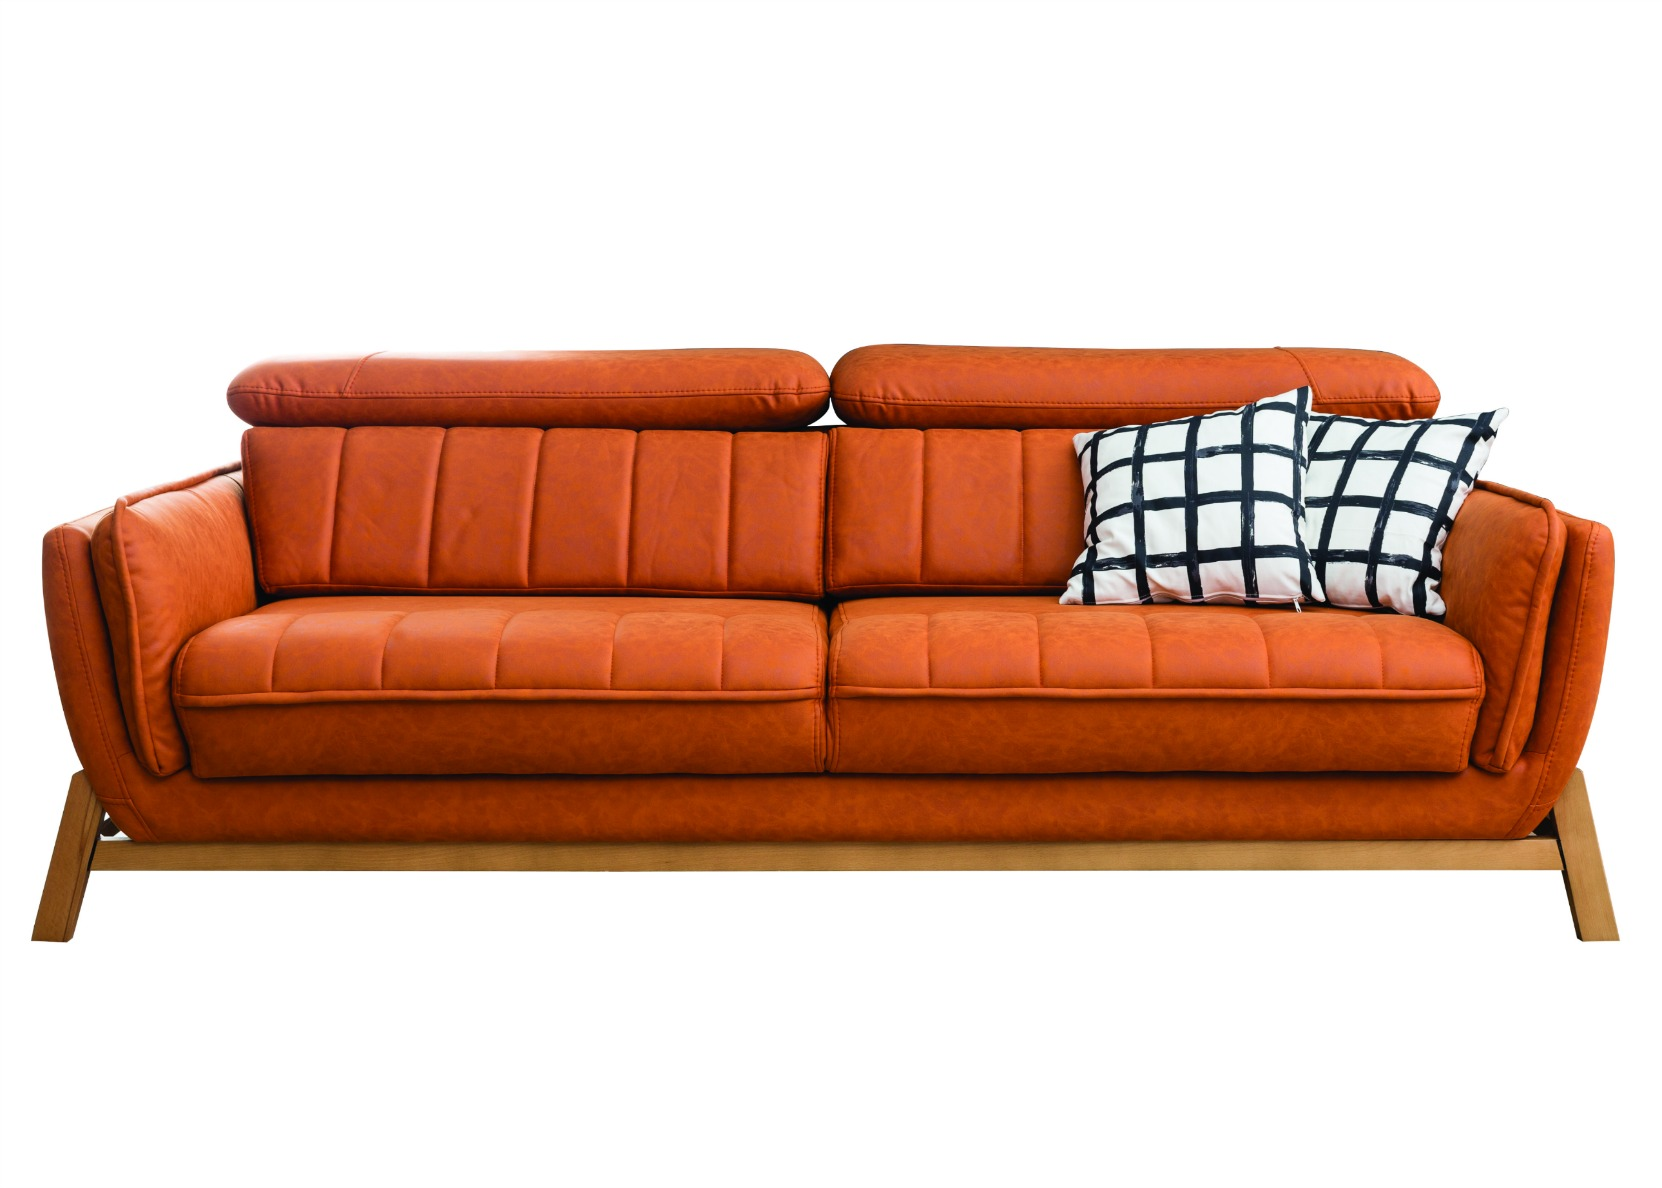 Merveilleux Relax Sofa With Motorized Sliding Seat ...